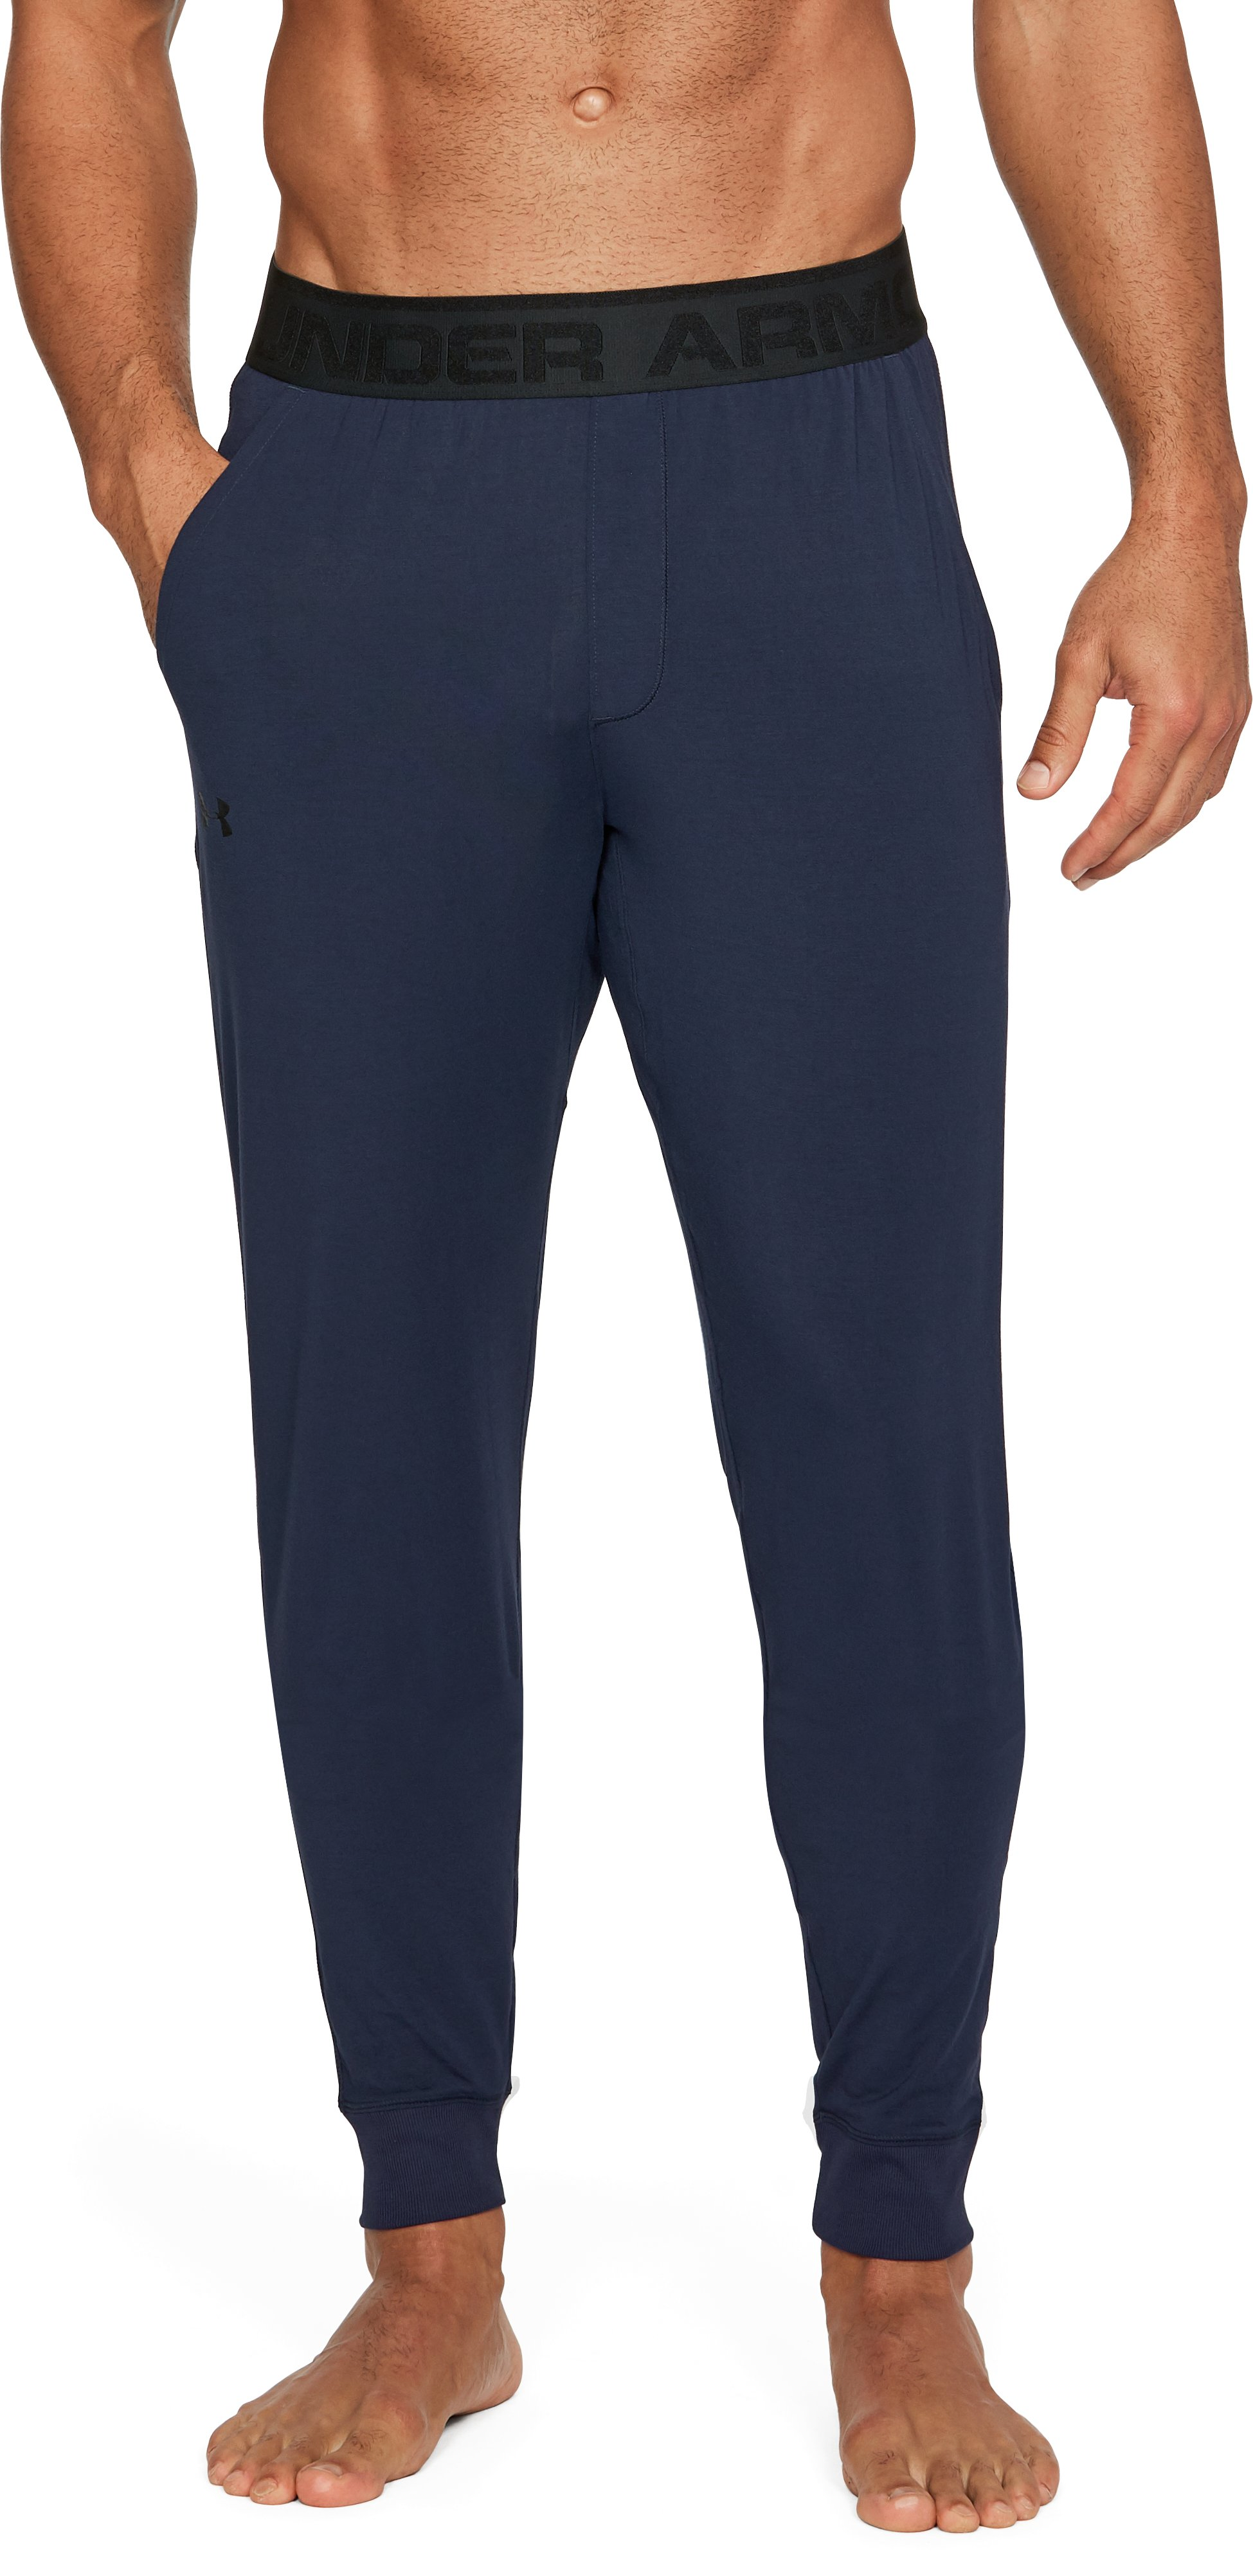 Men's Athlete Recovery Ultra Comfort Sleepwear Pants, Midnight Navy